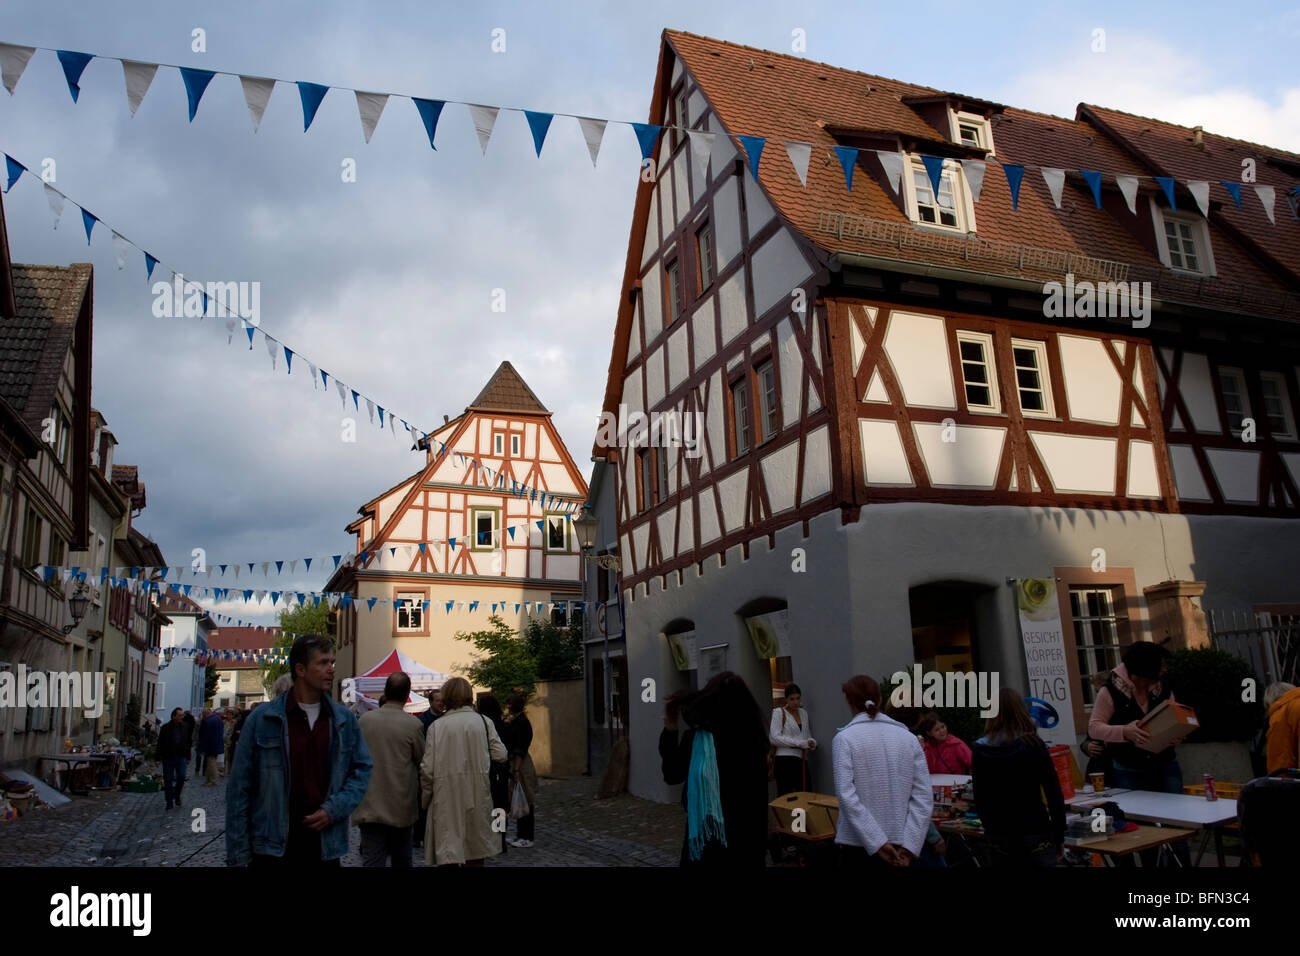 A flea market in the city center of Ladenburg, Germany - Stock Image